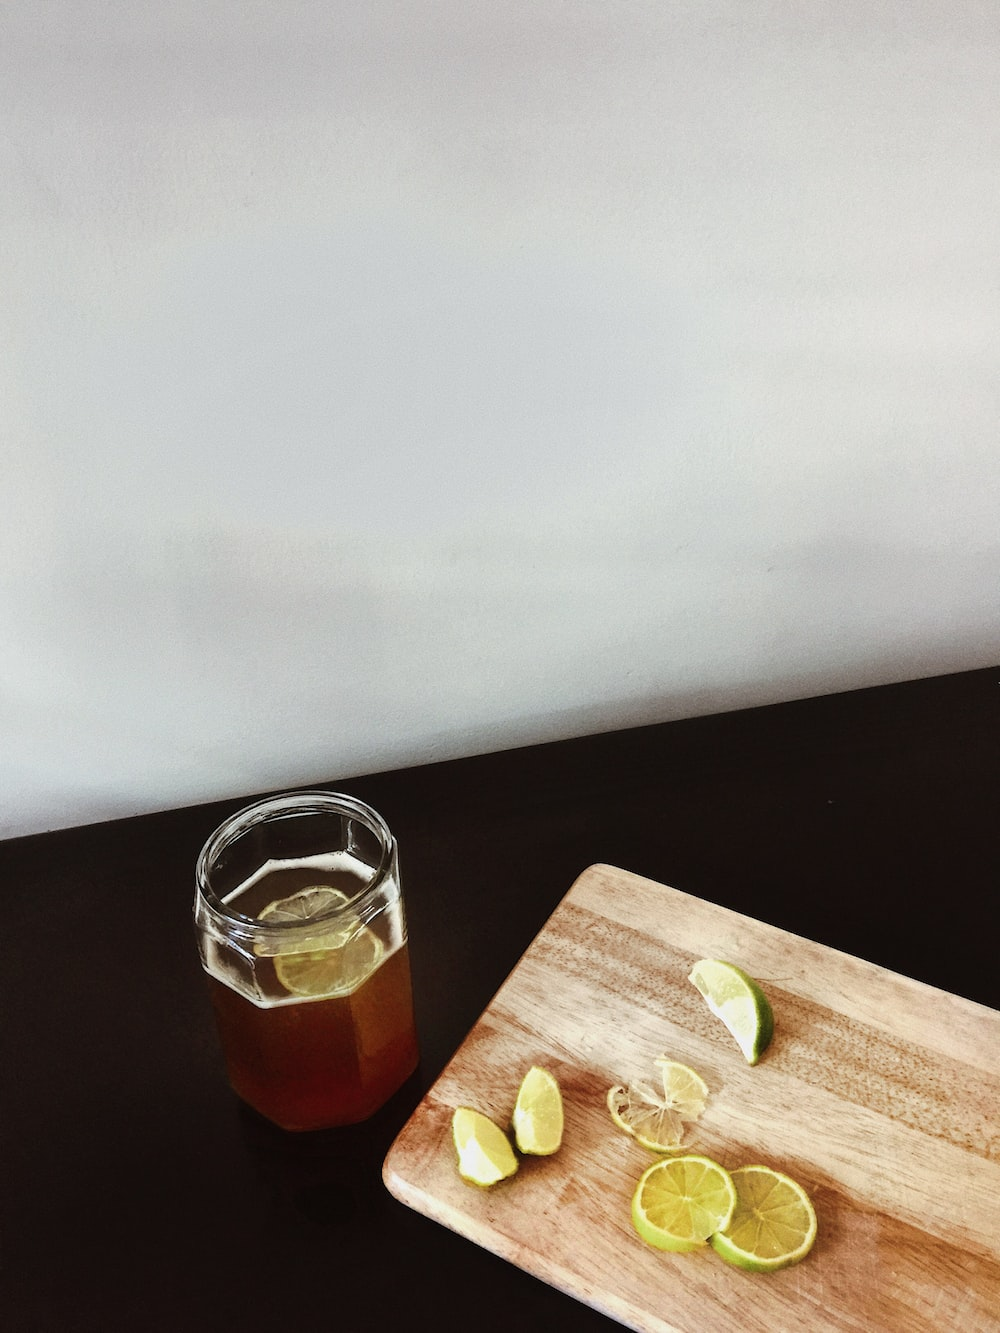 clear glass jar on brown wooden chopping board